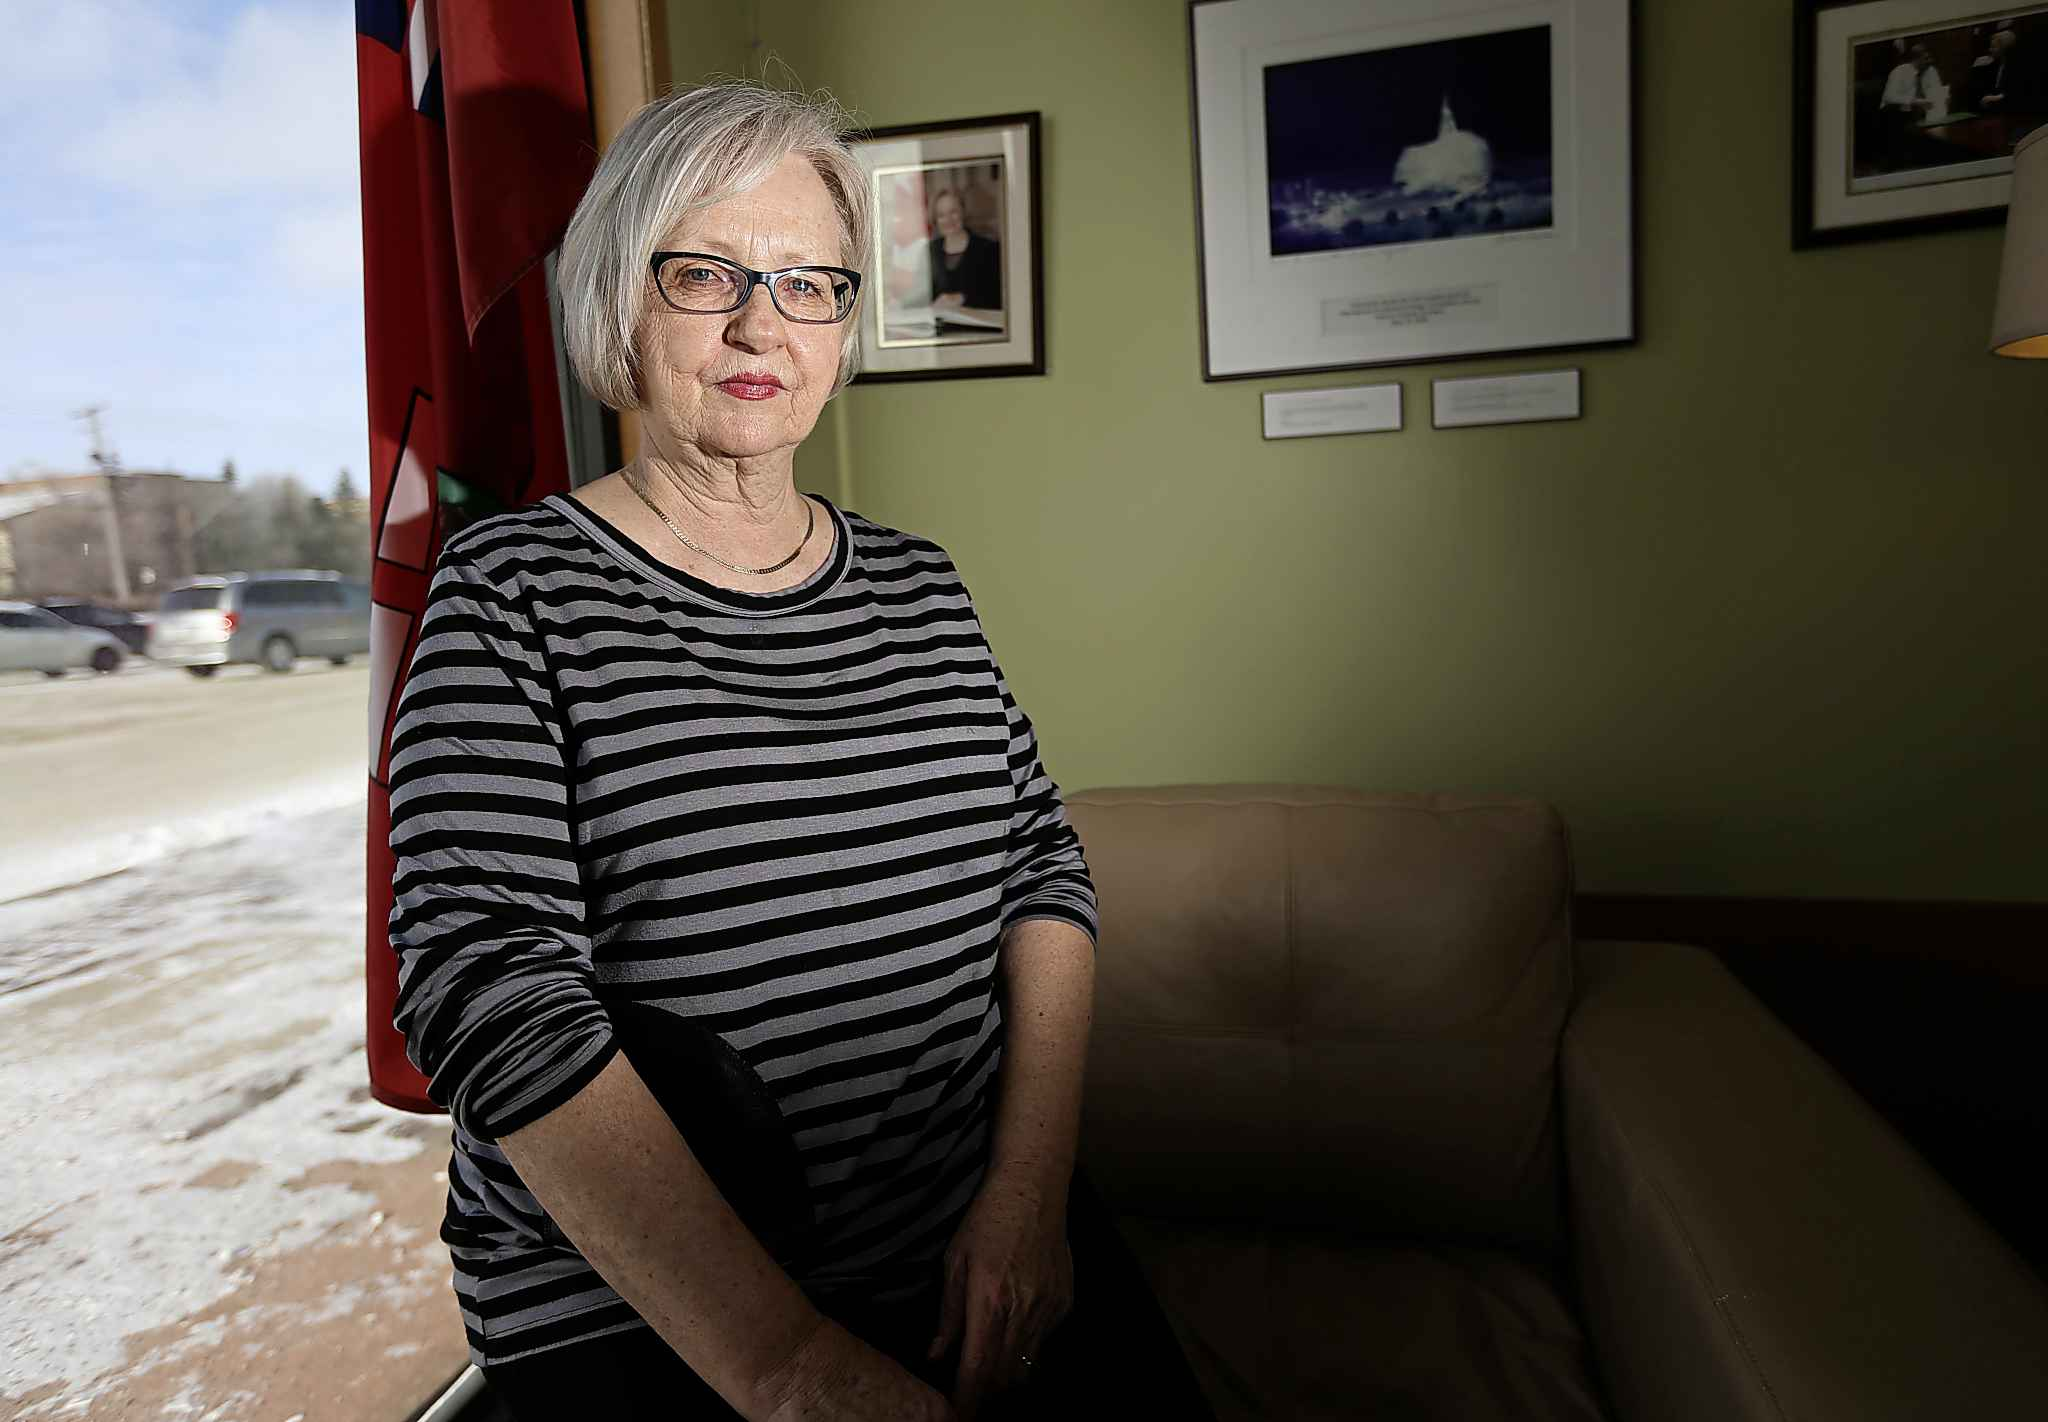 Former MP Joy Smith, sex-trafficking opponent and founder of the Joy Smith Foundation, commended the Winnipeg Police department for apprehending johns and seizing their vehicles in it's latest sex-trade sweep of the West End.